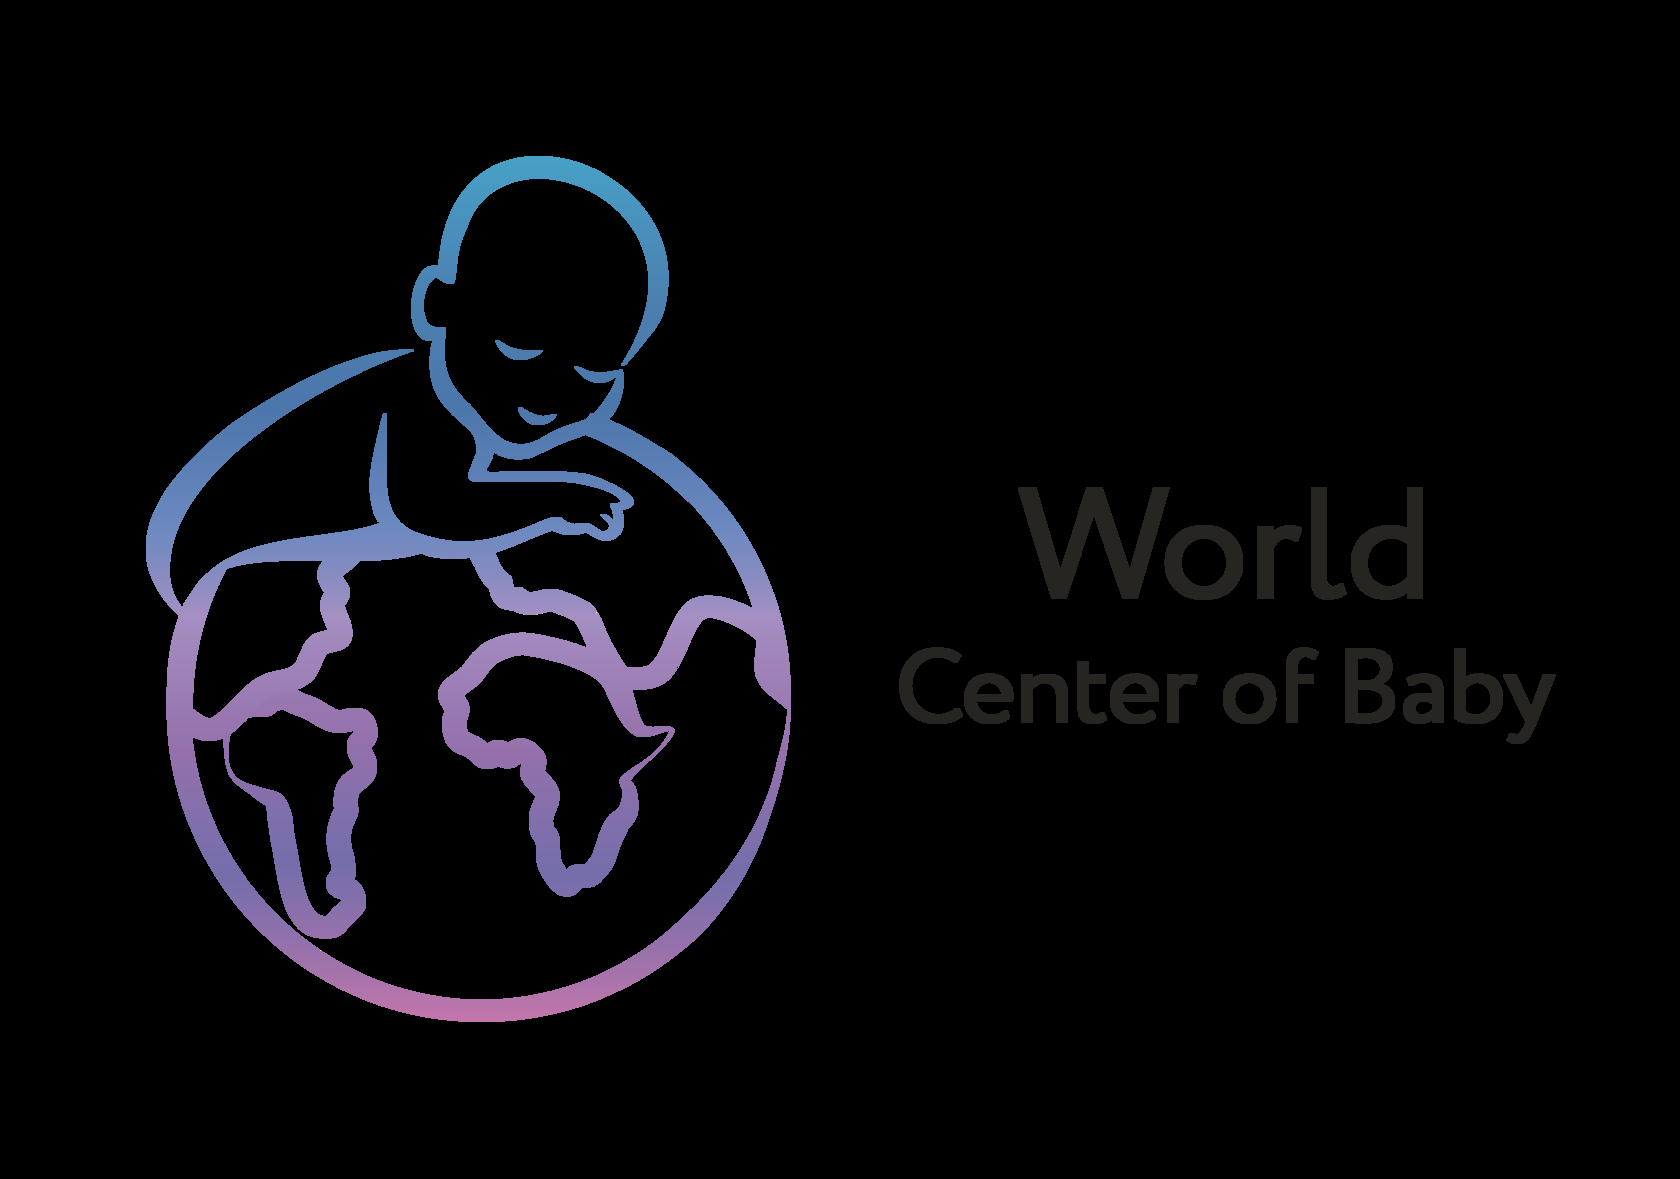 WORLD CENTER OF BABY